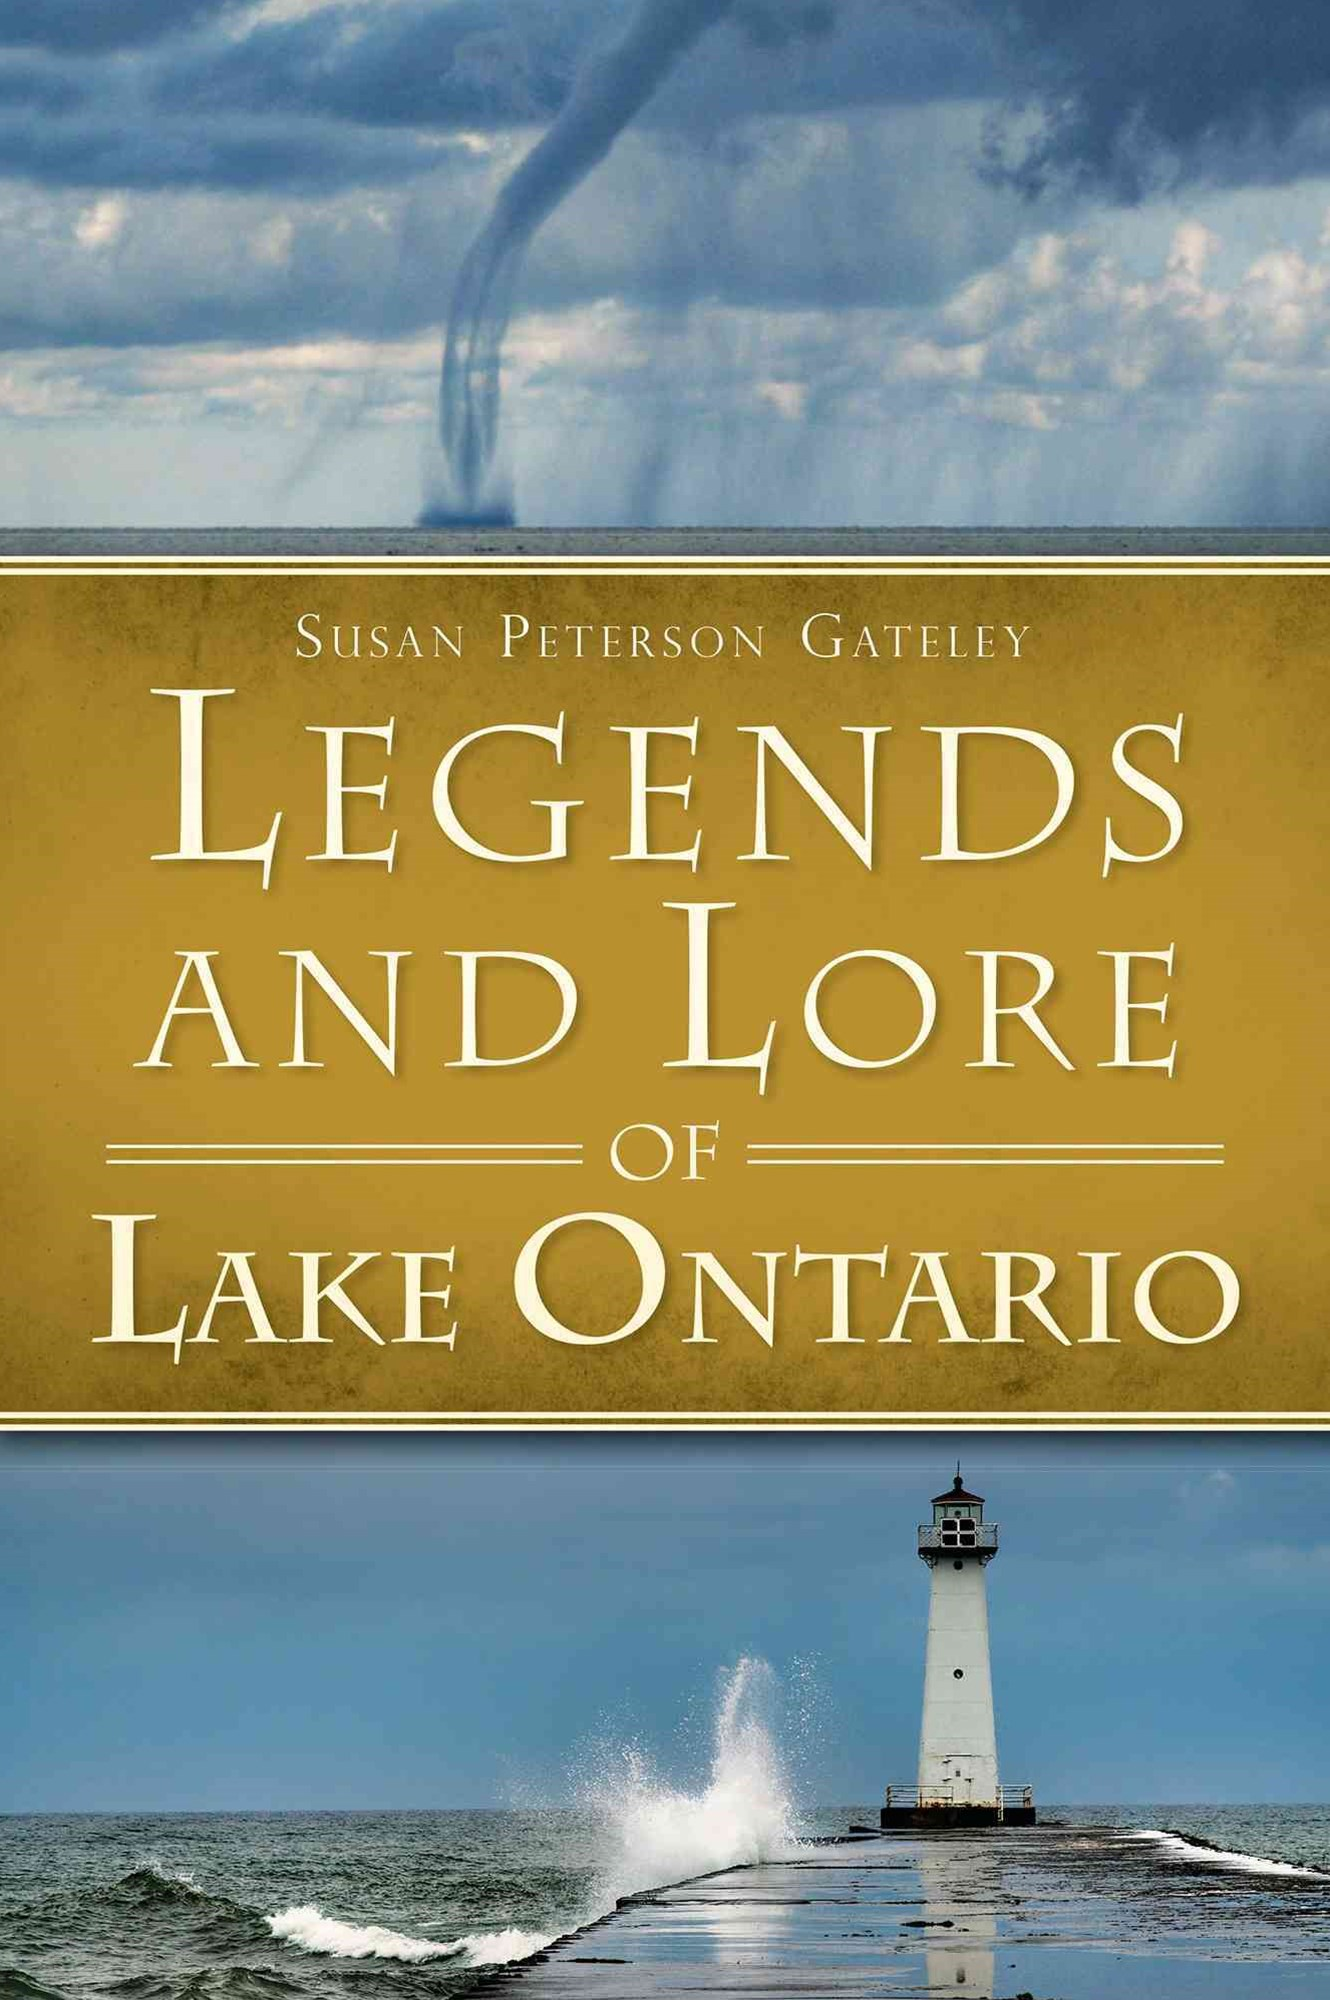 Legends and Lore of Lake Ontario